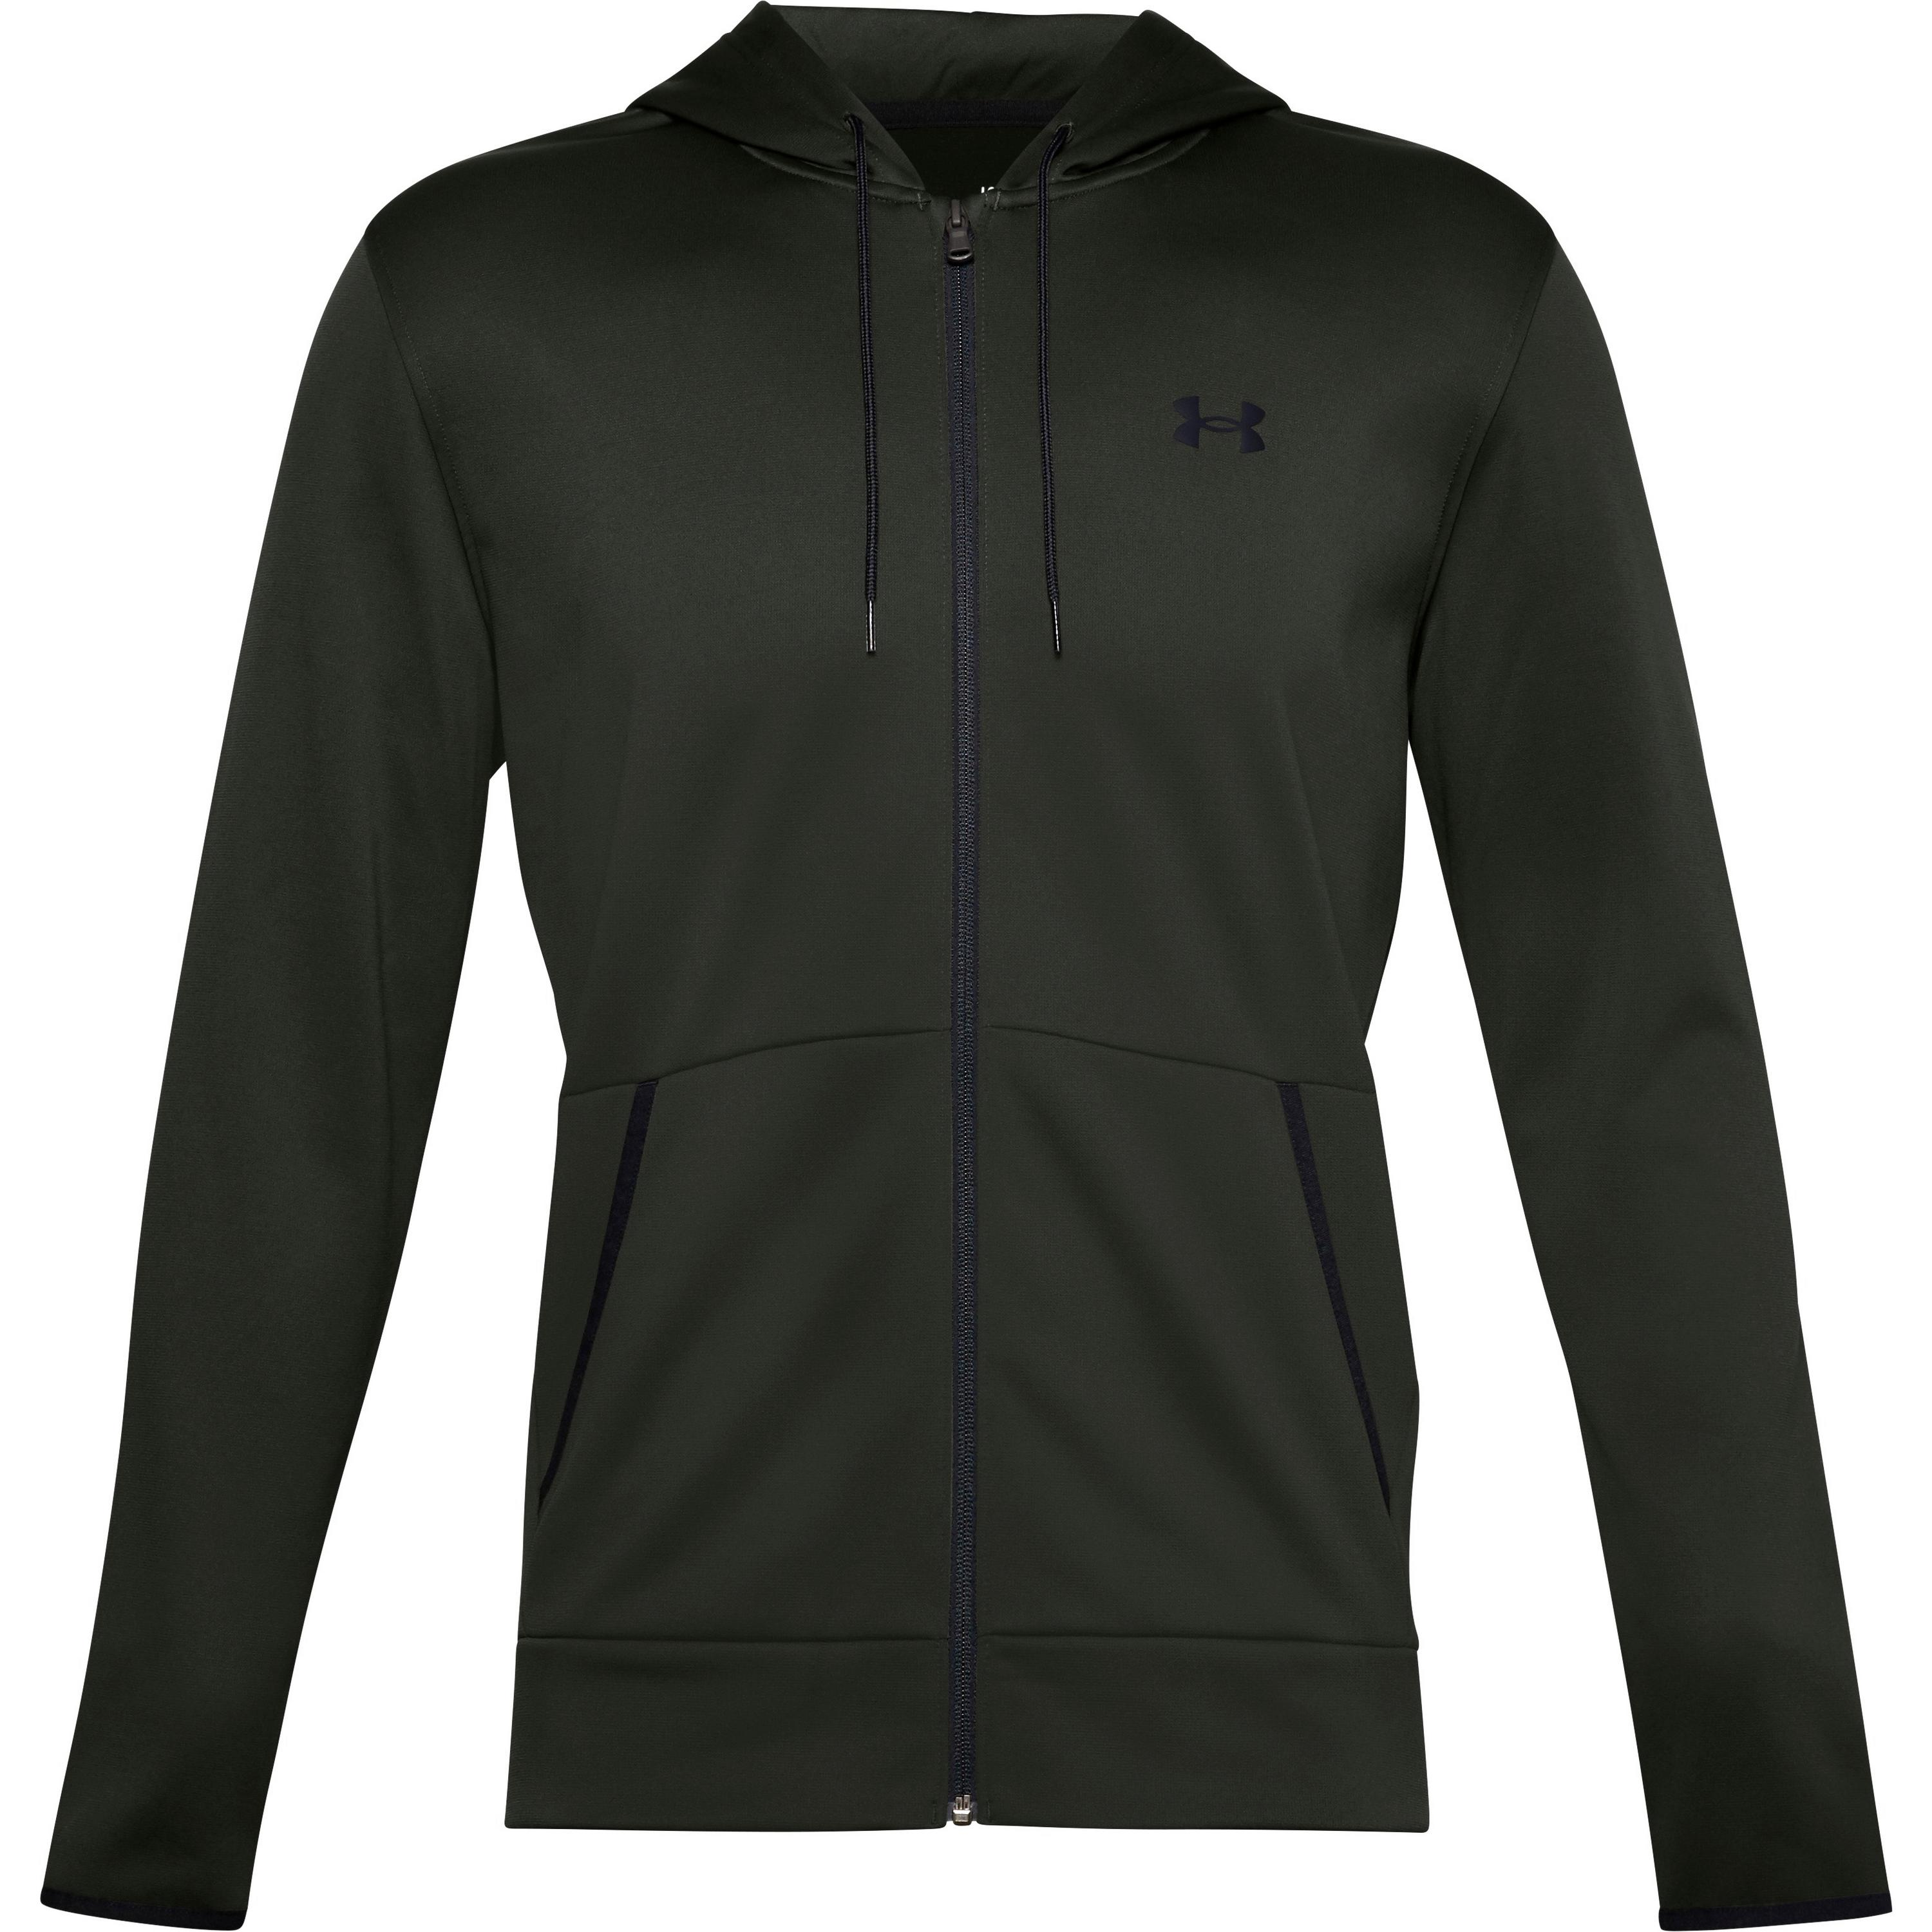 under armour -  Trainingsjacke Herren